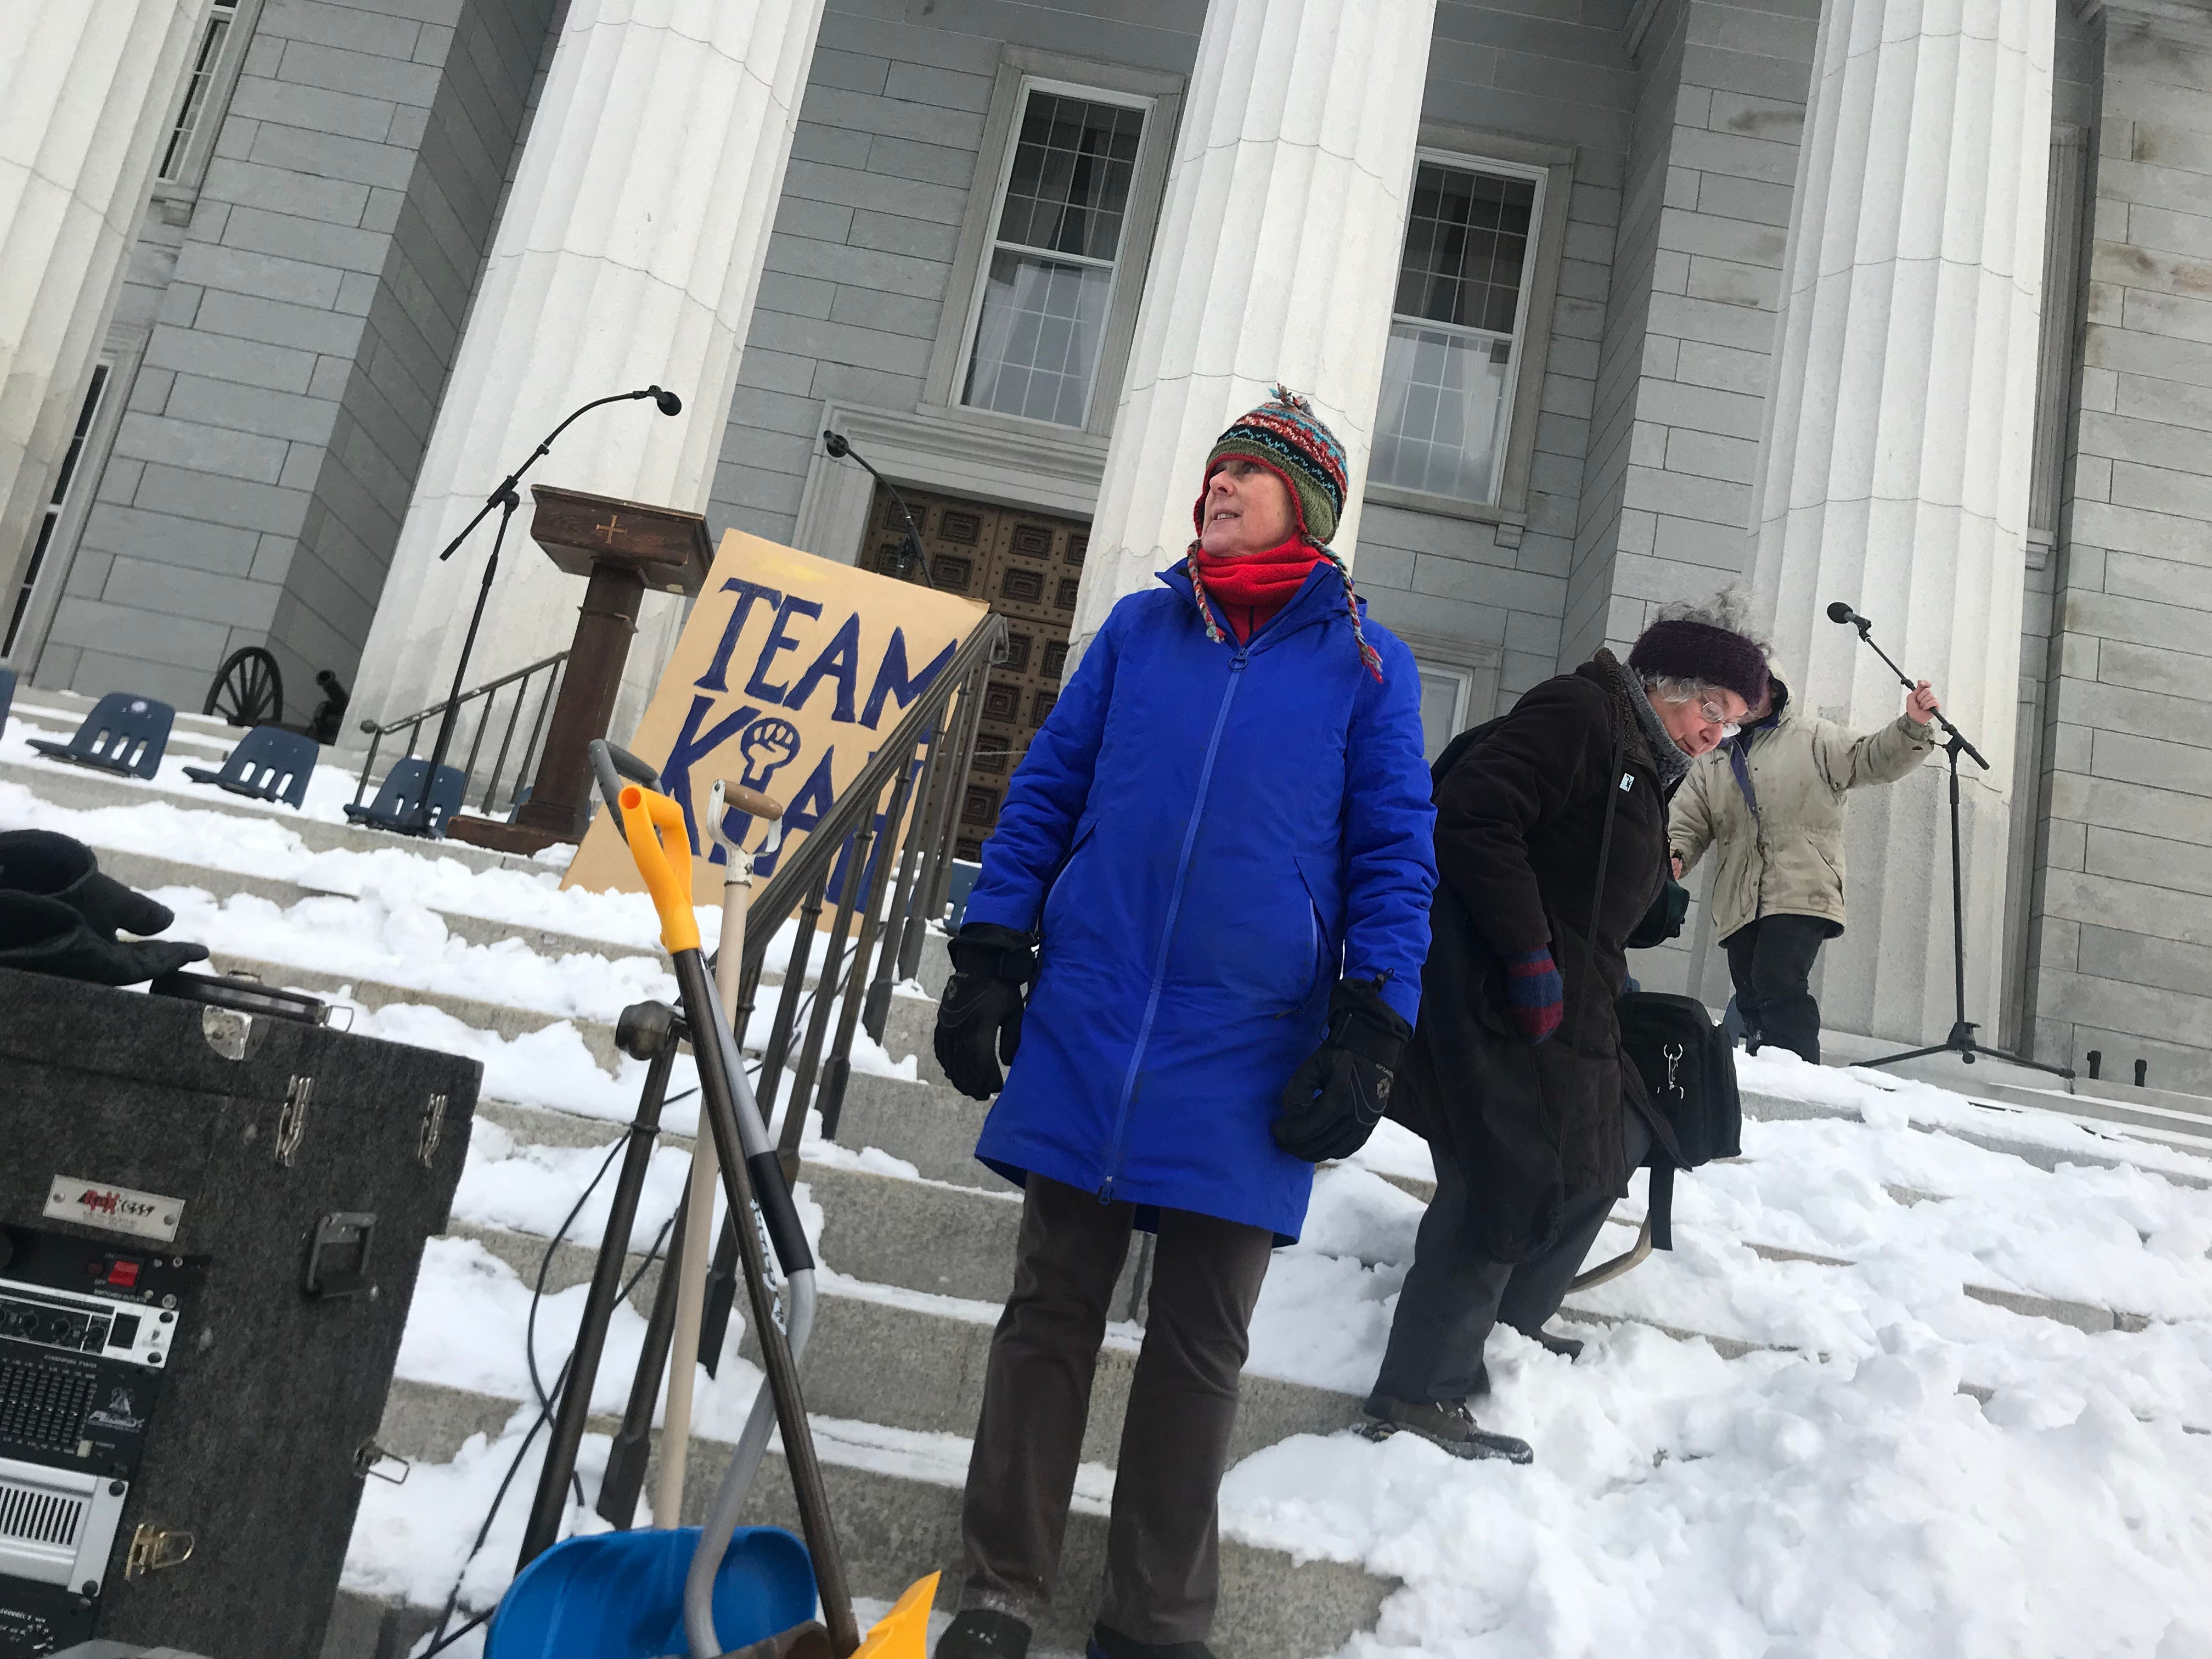 Jo Sahel Courtney, organizer of the Women's March VT, starts setting up on the steps of the capital in Montpelier on Saturday morning, Jan. 19, 2019. Temperatures were in the low single digits.